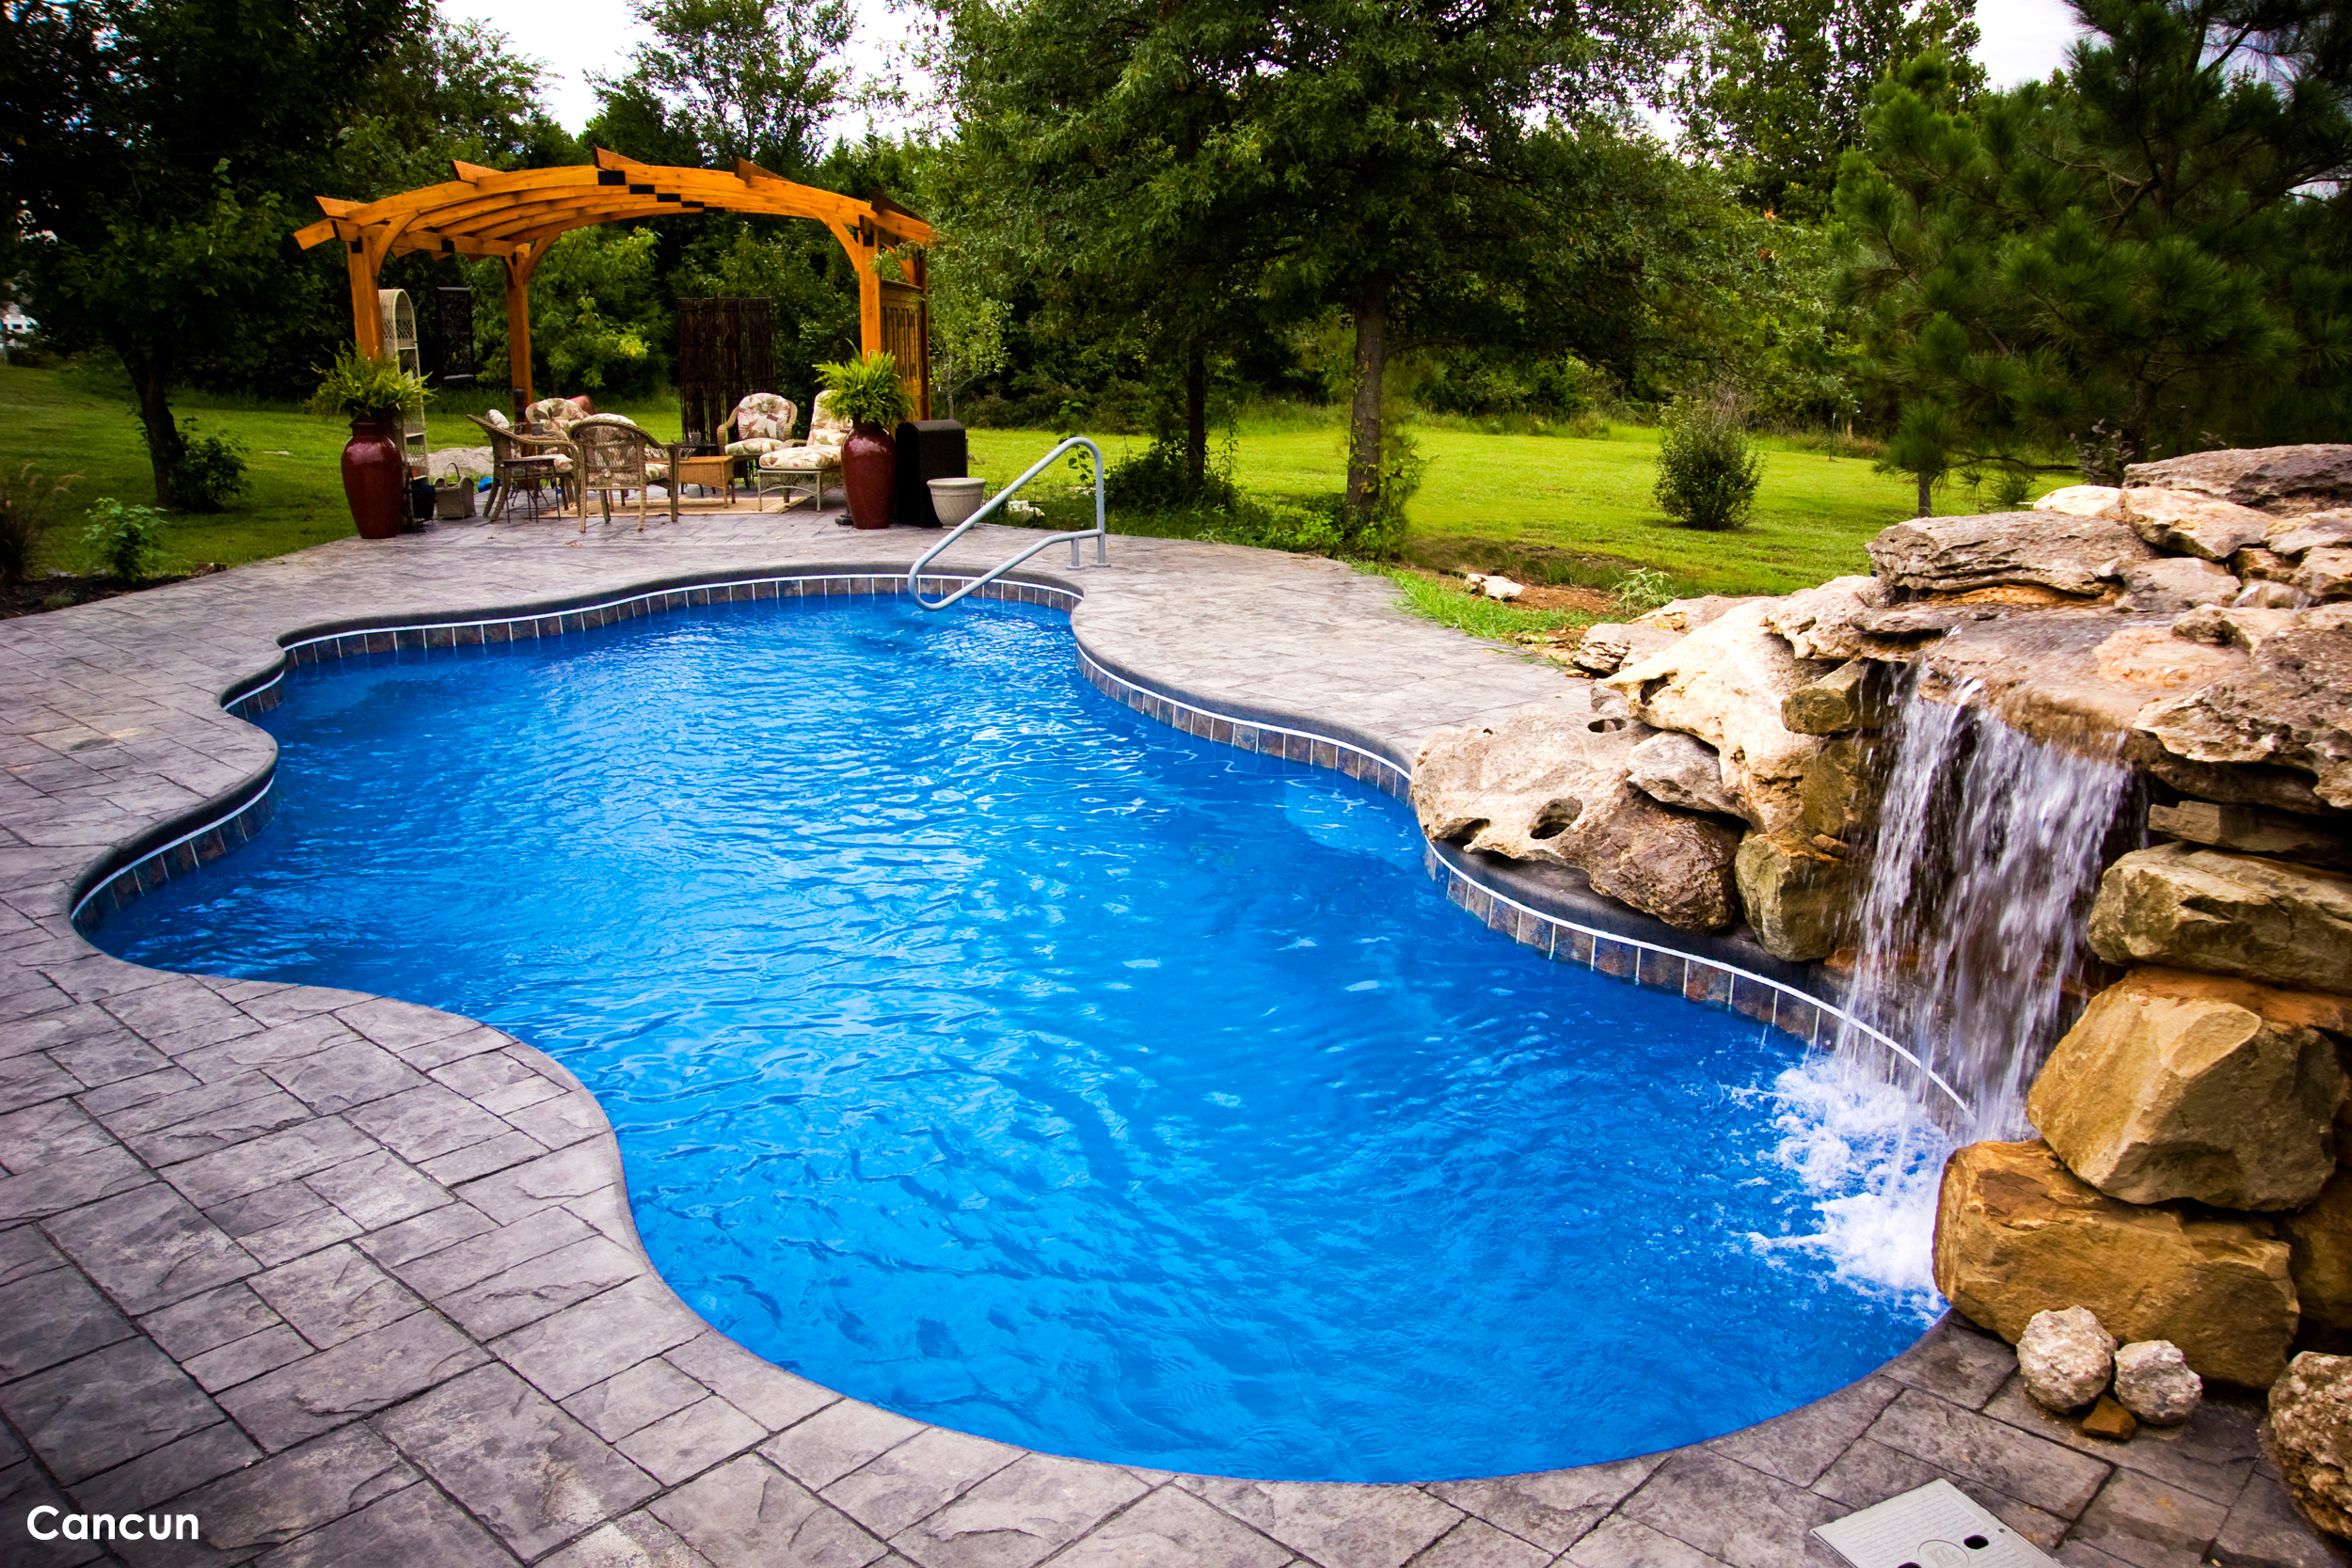 Viking Pools - Viking Pools is the recognized leader in fiberglass pools. Rectangles, kidneys, freeforms, pool/spa combos and swim spas are all available with a variety of innovative features and state of the art manufacturing.*Advanced Composite Pool' Technology*Ceramic Core*Final Layer of Fiberglass is Hand Laid*Limited Lifetime Warranty on Finishes*Amazing Selection of Poolsmore info…